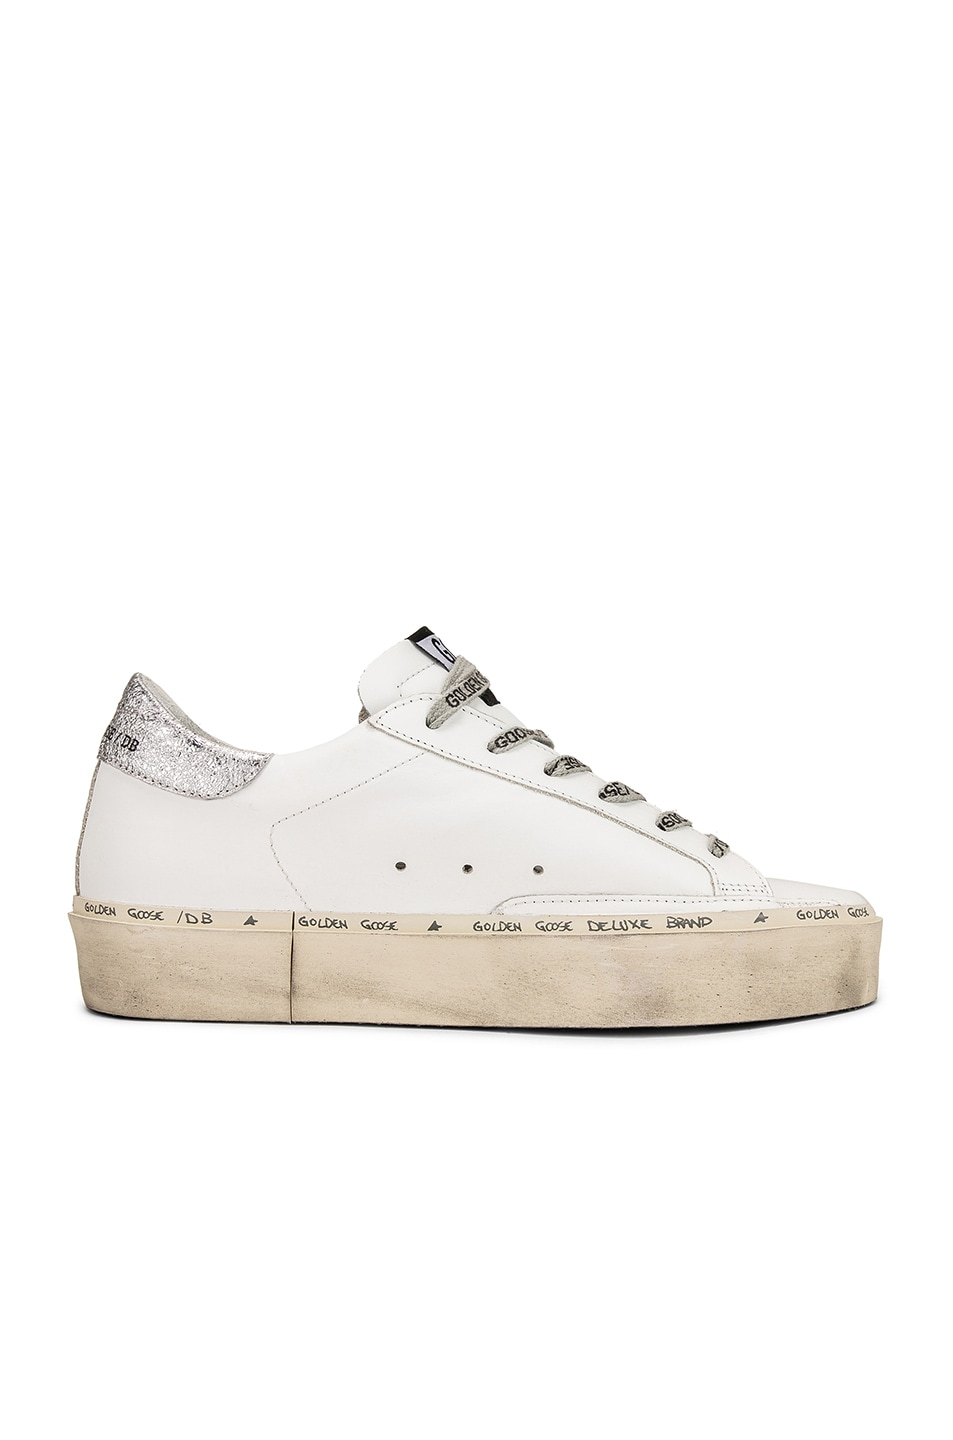 Image 7 of Golden Goose Hi Star Sneakers in White Leather & Silver Pink